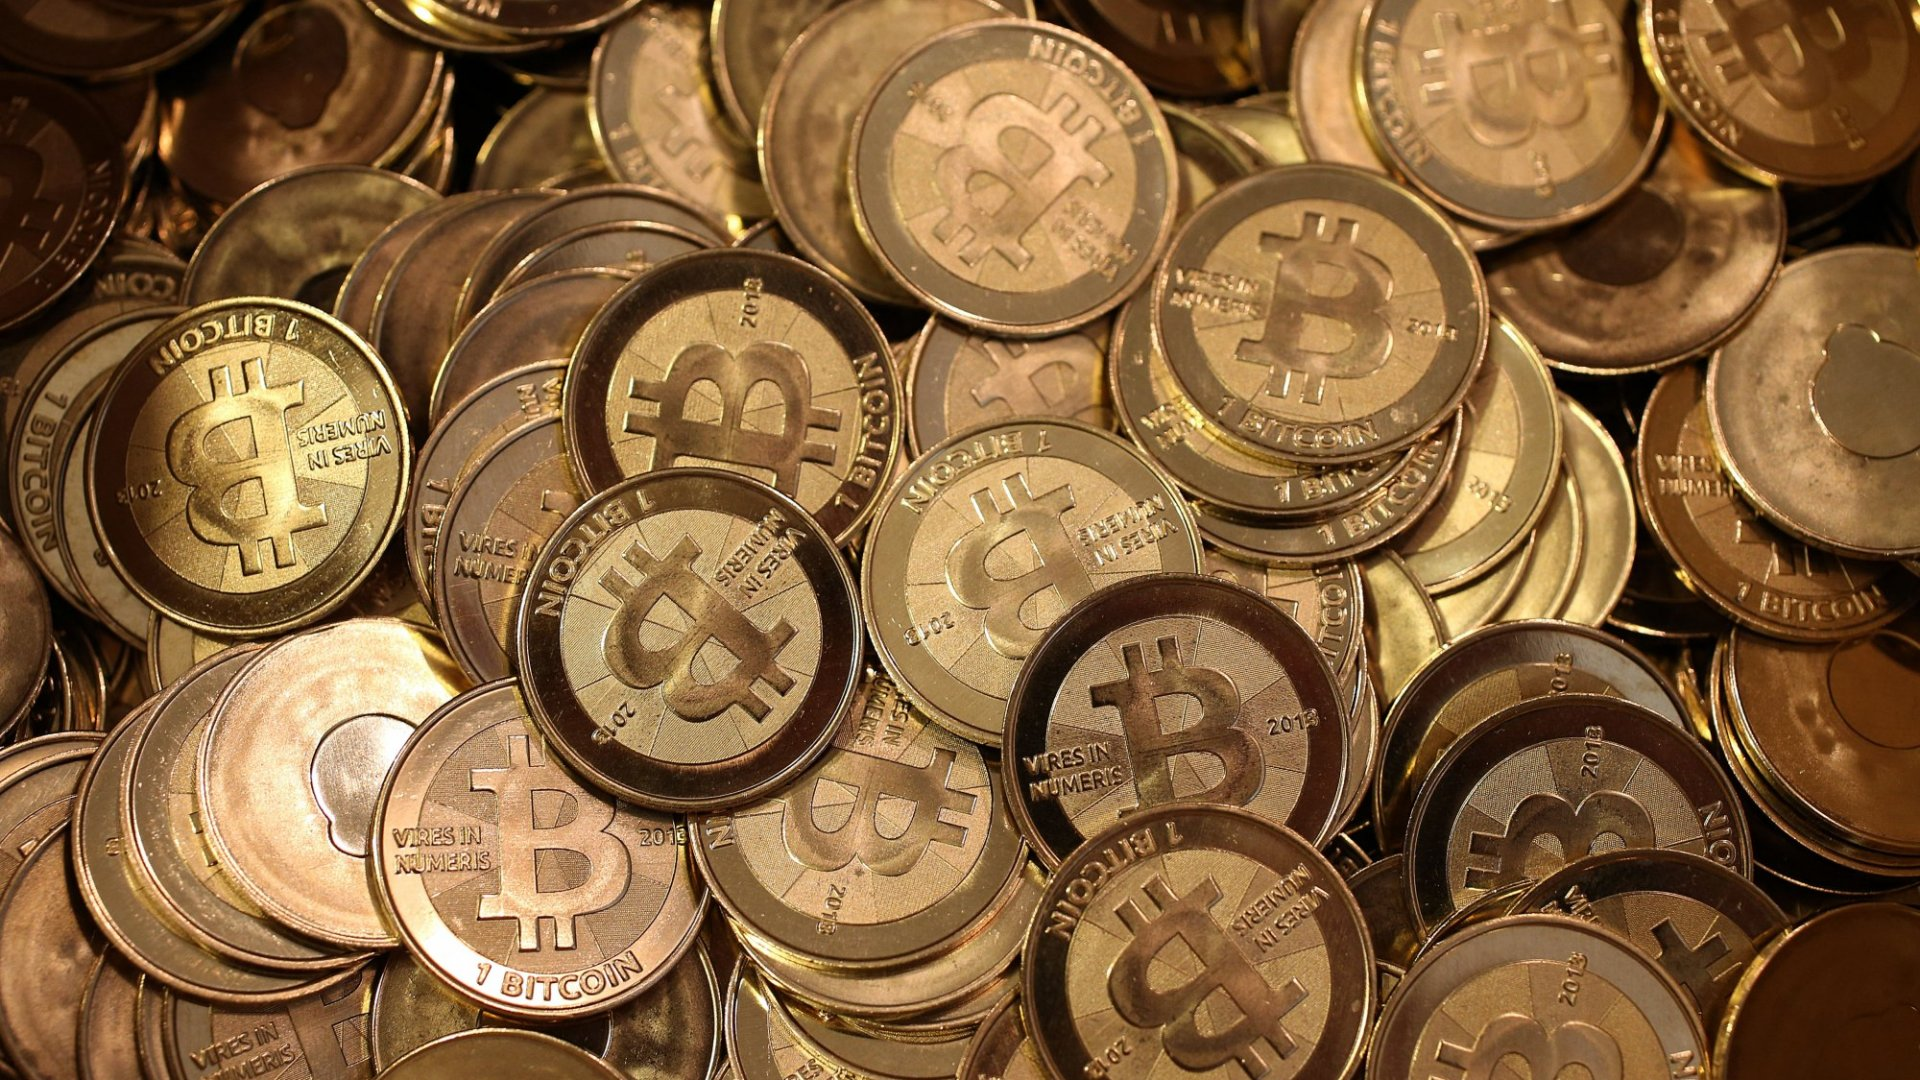 3 Reasons Why It Matters Who the Real Founder of Bitcoin Is